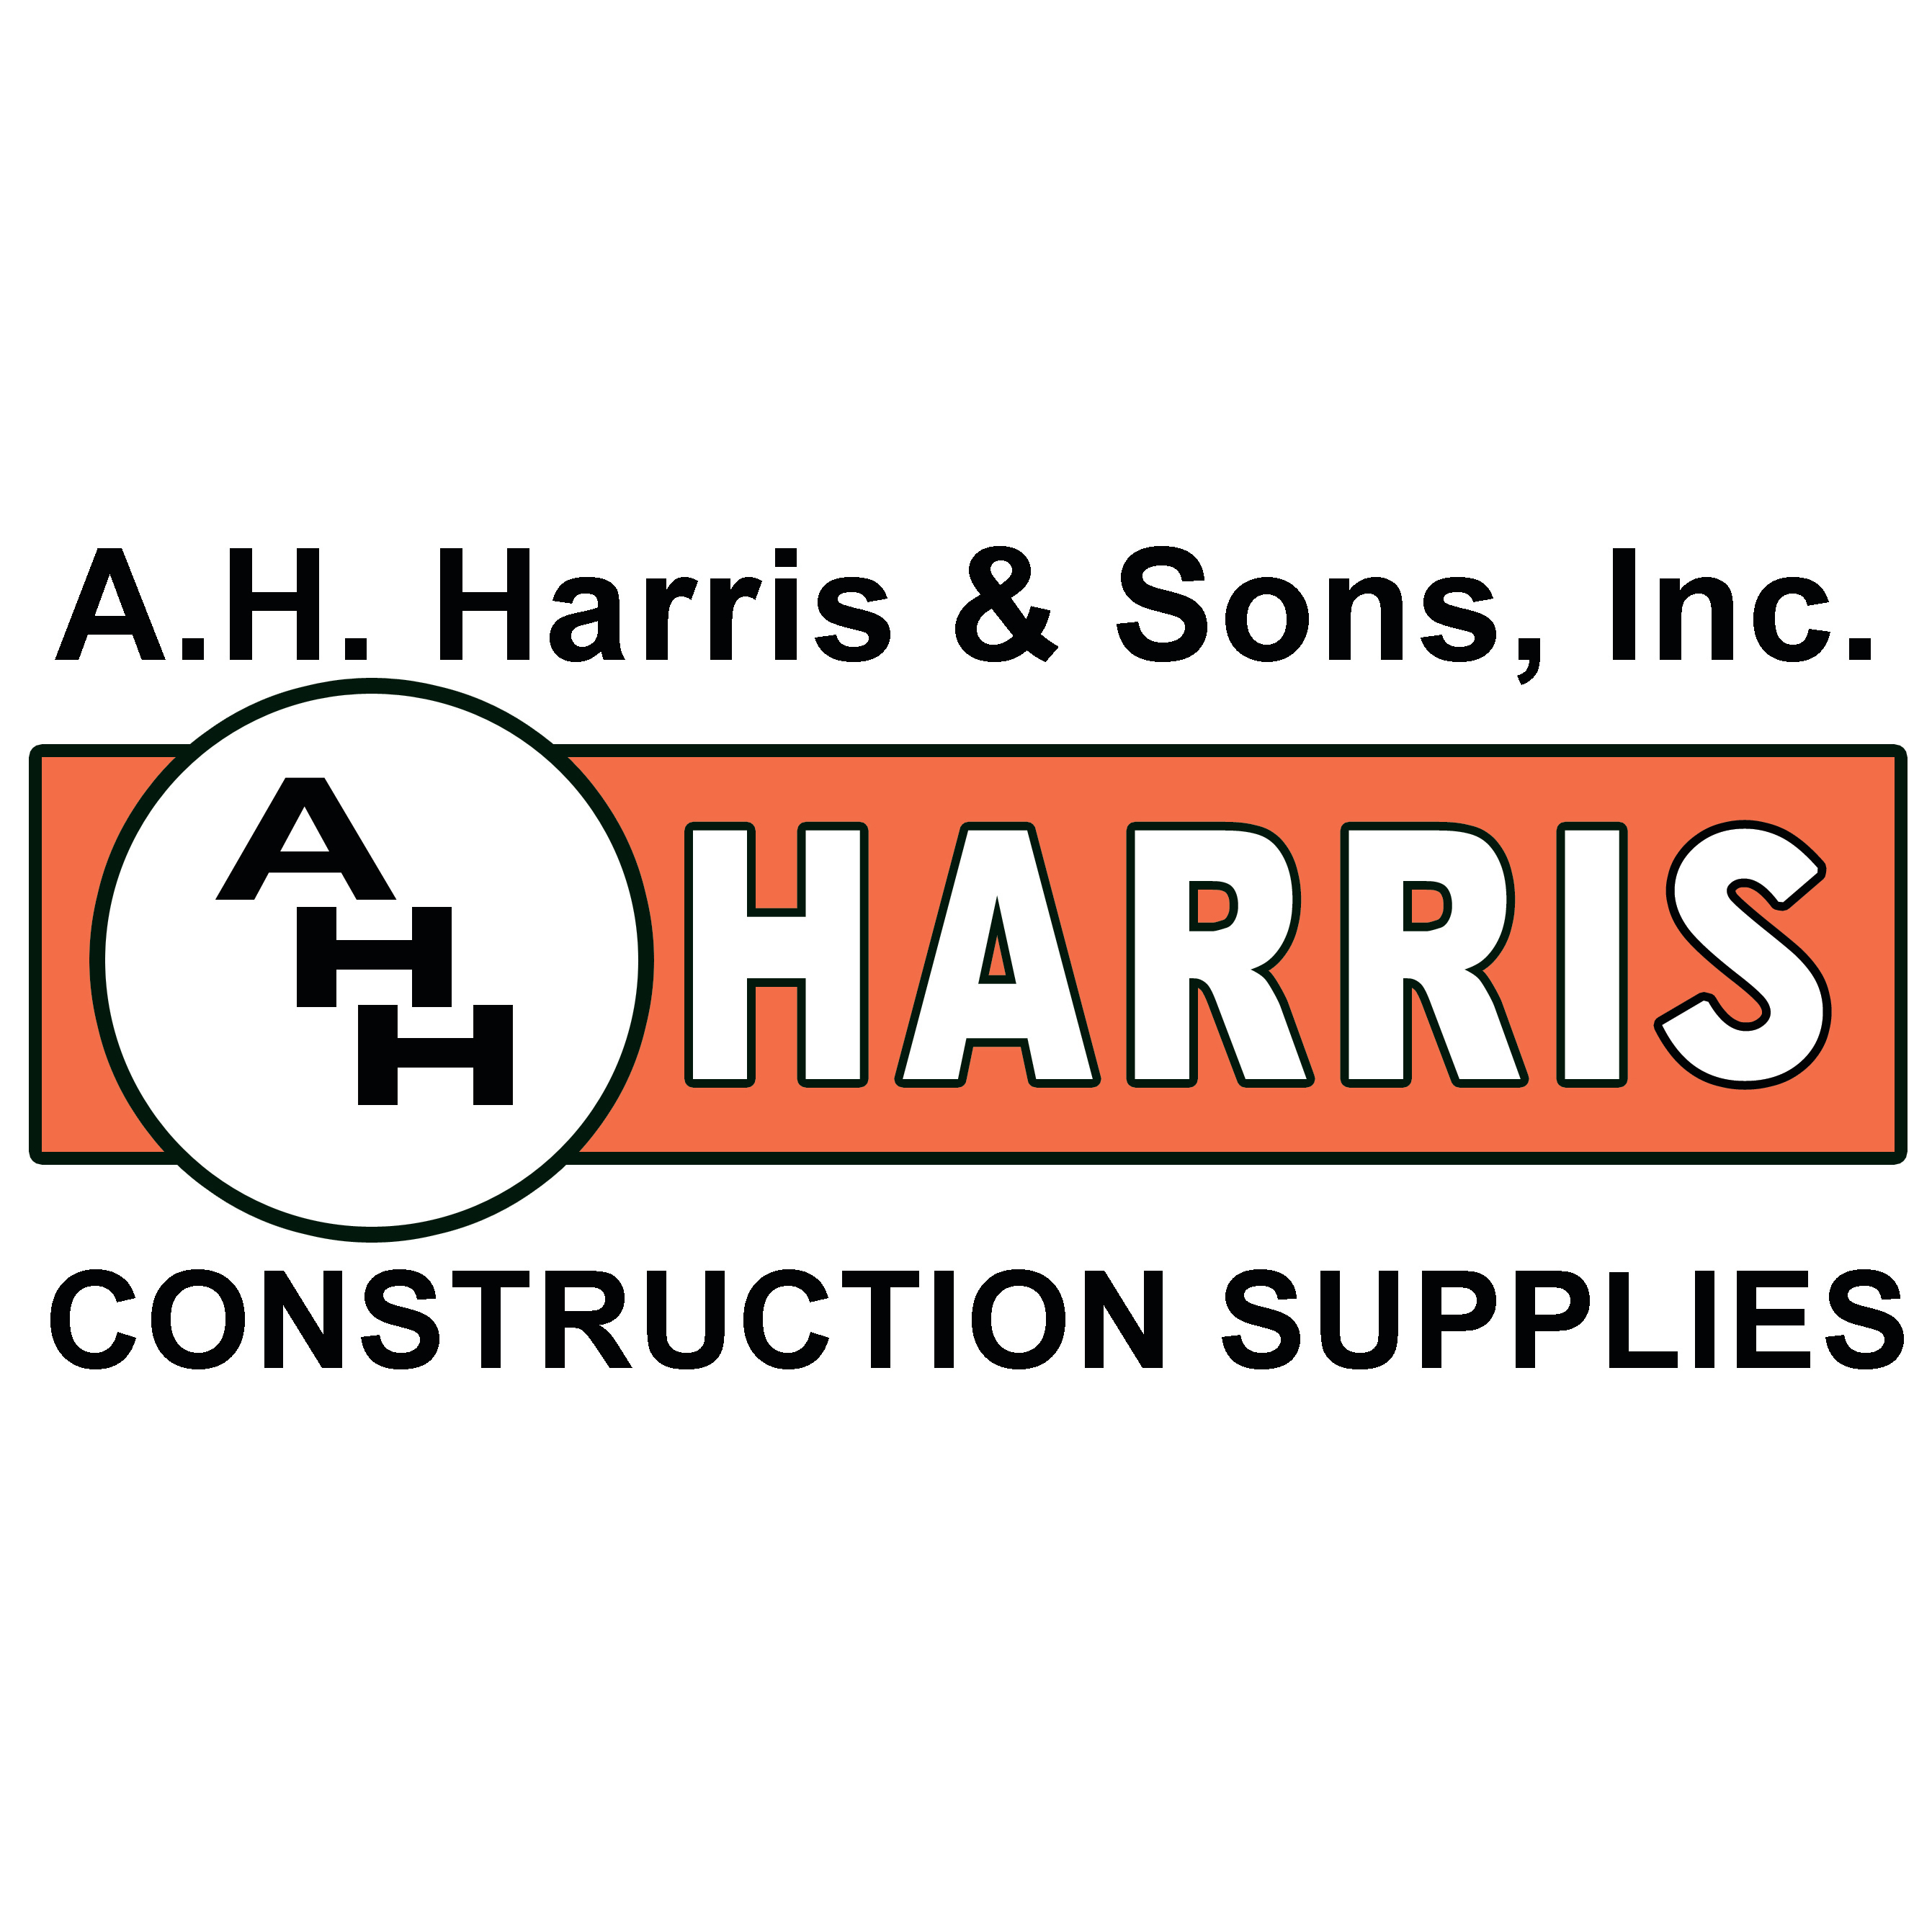 A.H. Harris & Sons, Inc.